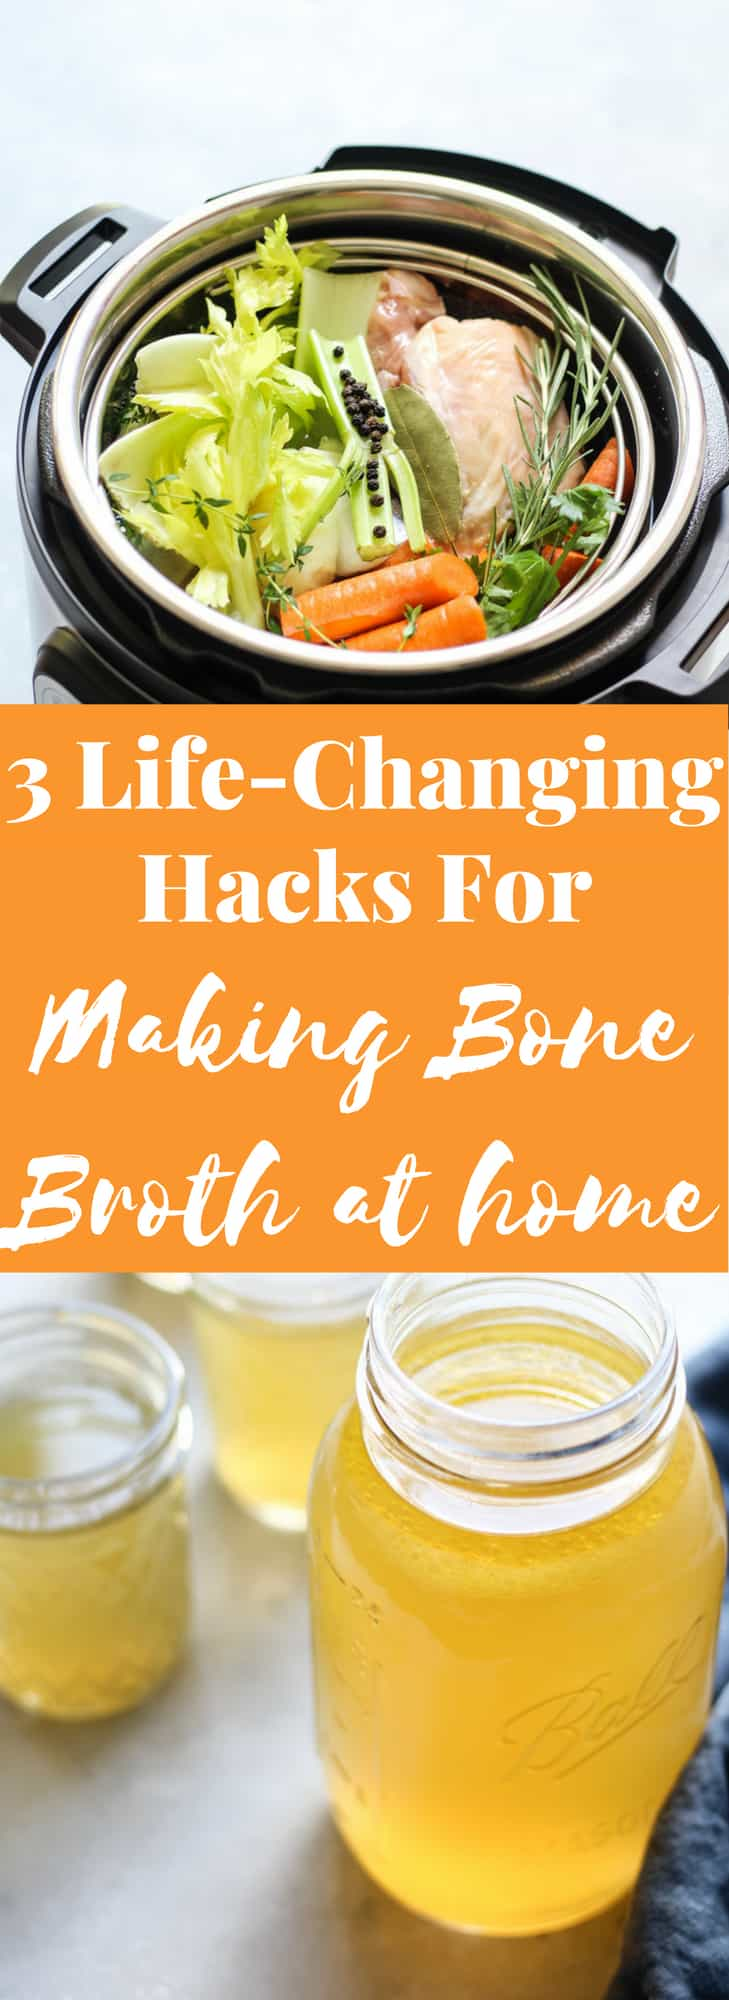 How to make Bone Broth Recipe with life-changing hacks pinterest